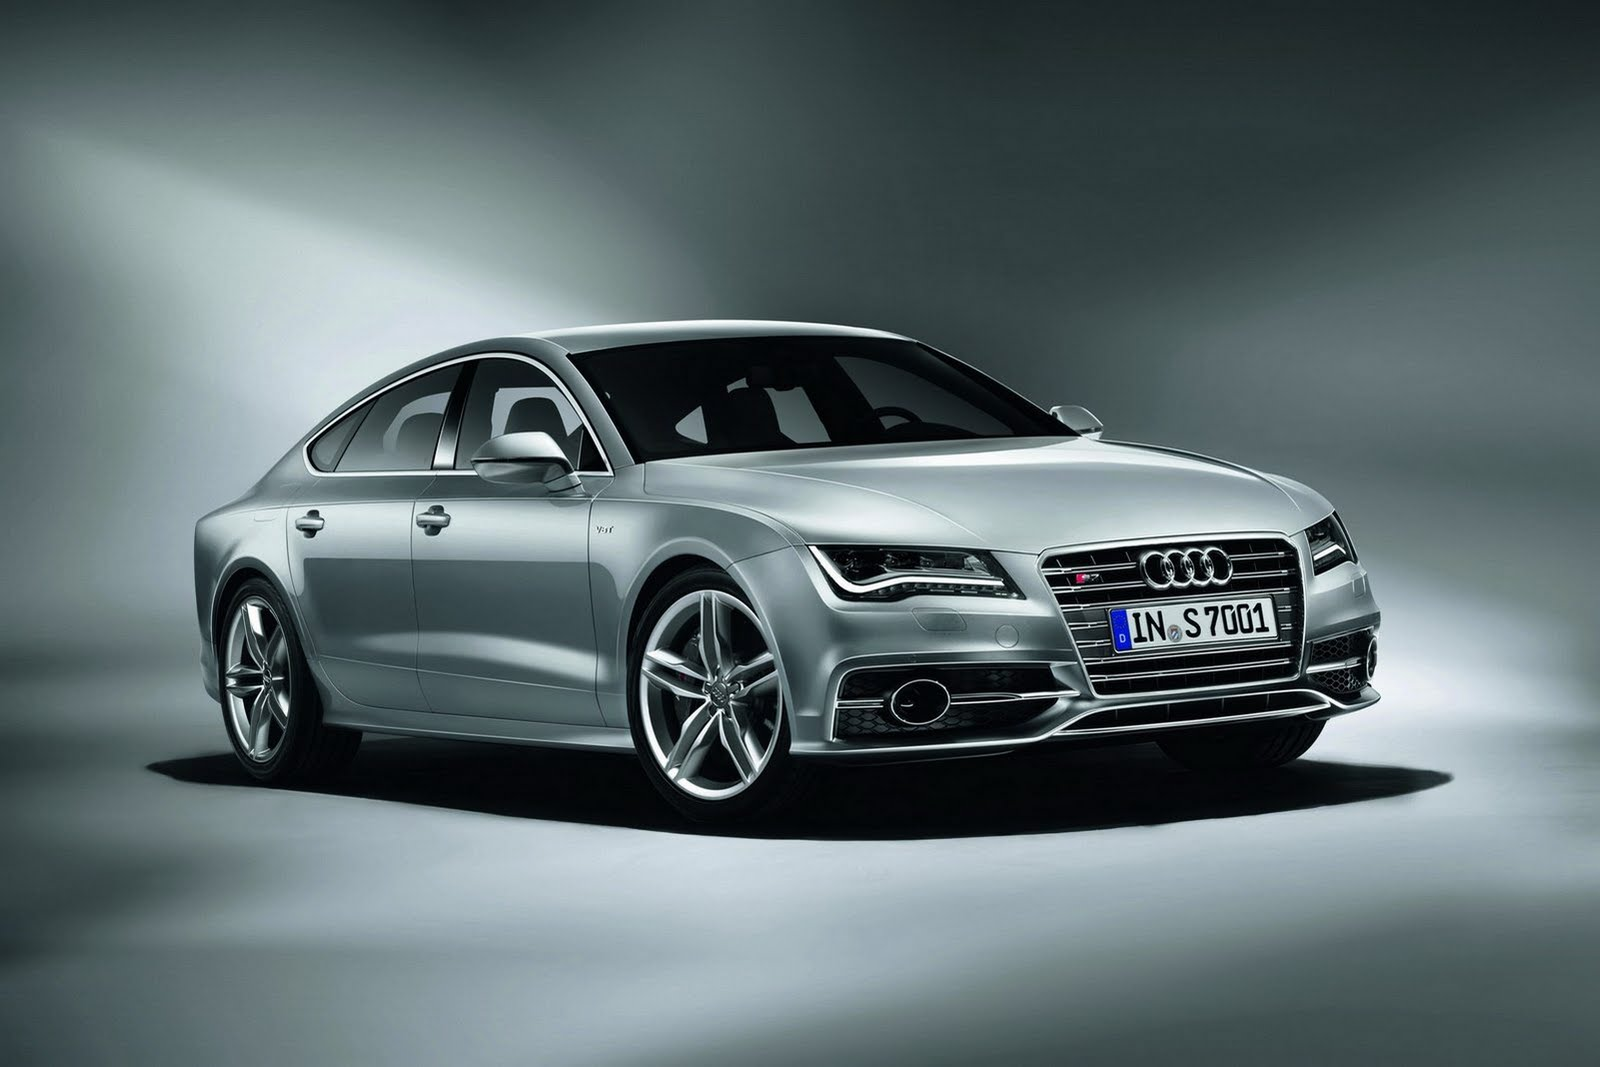 2012 audi s7 sportback with 420hp bi turbo v8 autooonline magazine. Black Bedroom Furniture Sets. Home Design Ideas